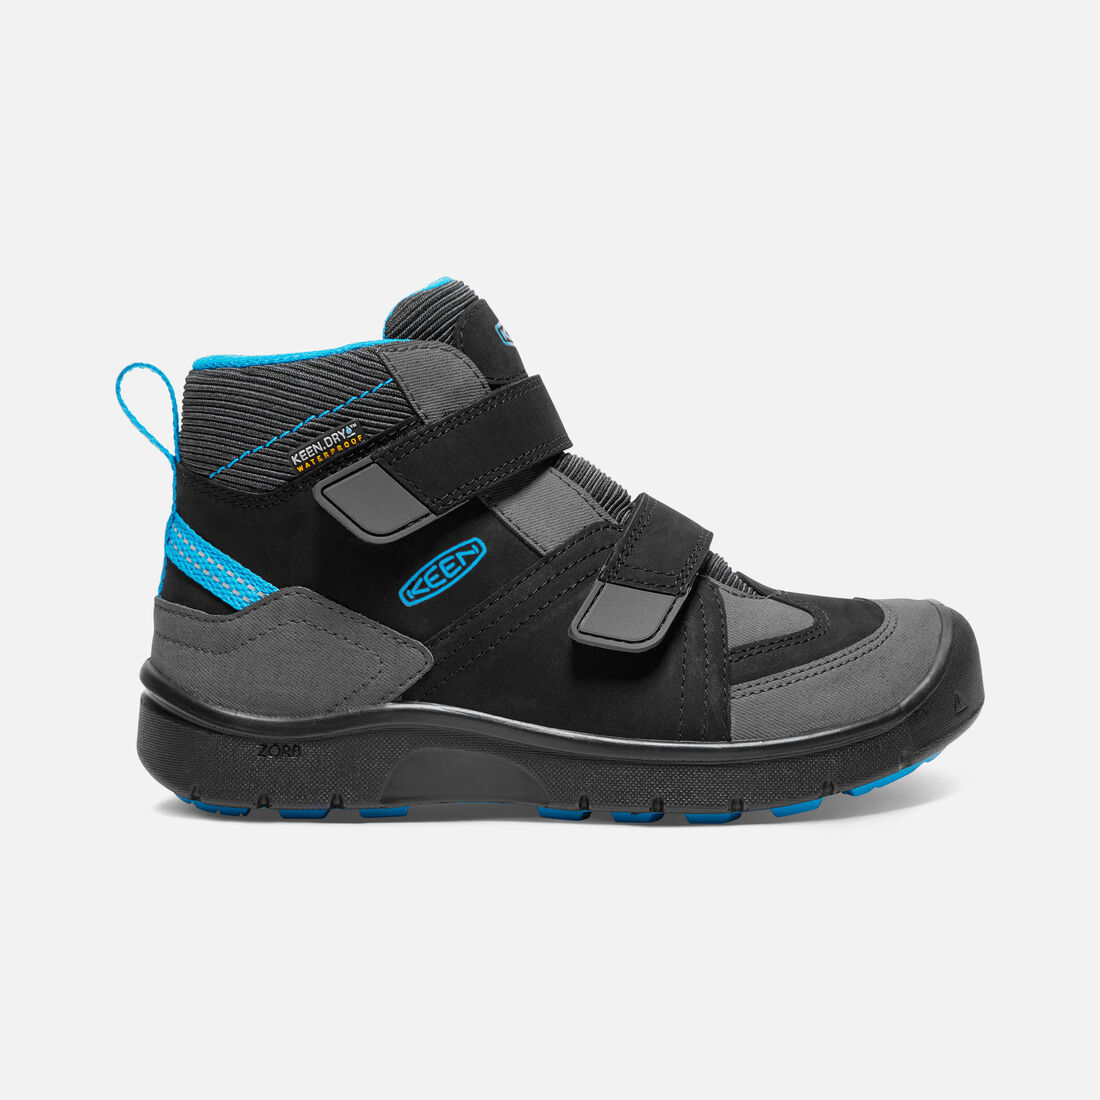 Big Kids' HIKEPORT MID STRAP Waterproof in Black/Blue Jewel - large view.